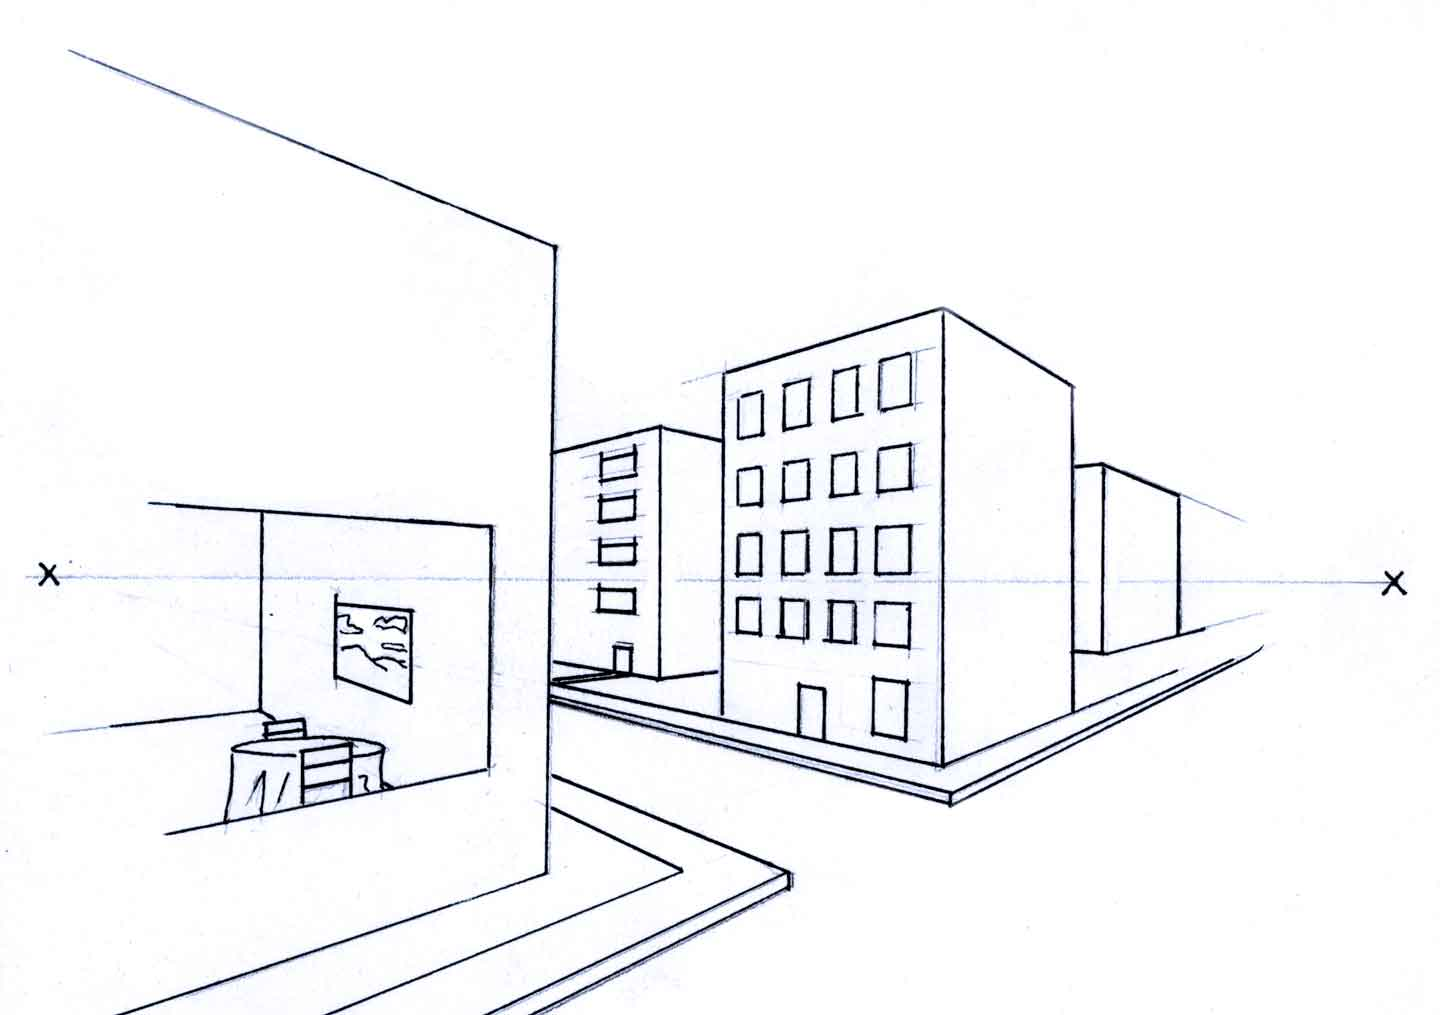 Online Perspective Drawing Lesson: How To Draw Buildings Using Two Point Perspective